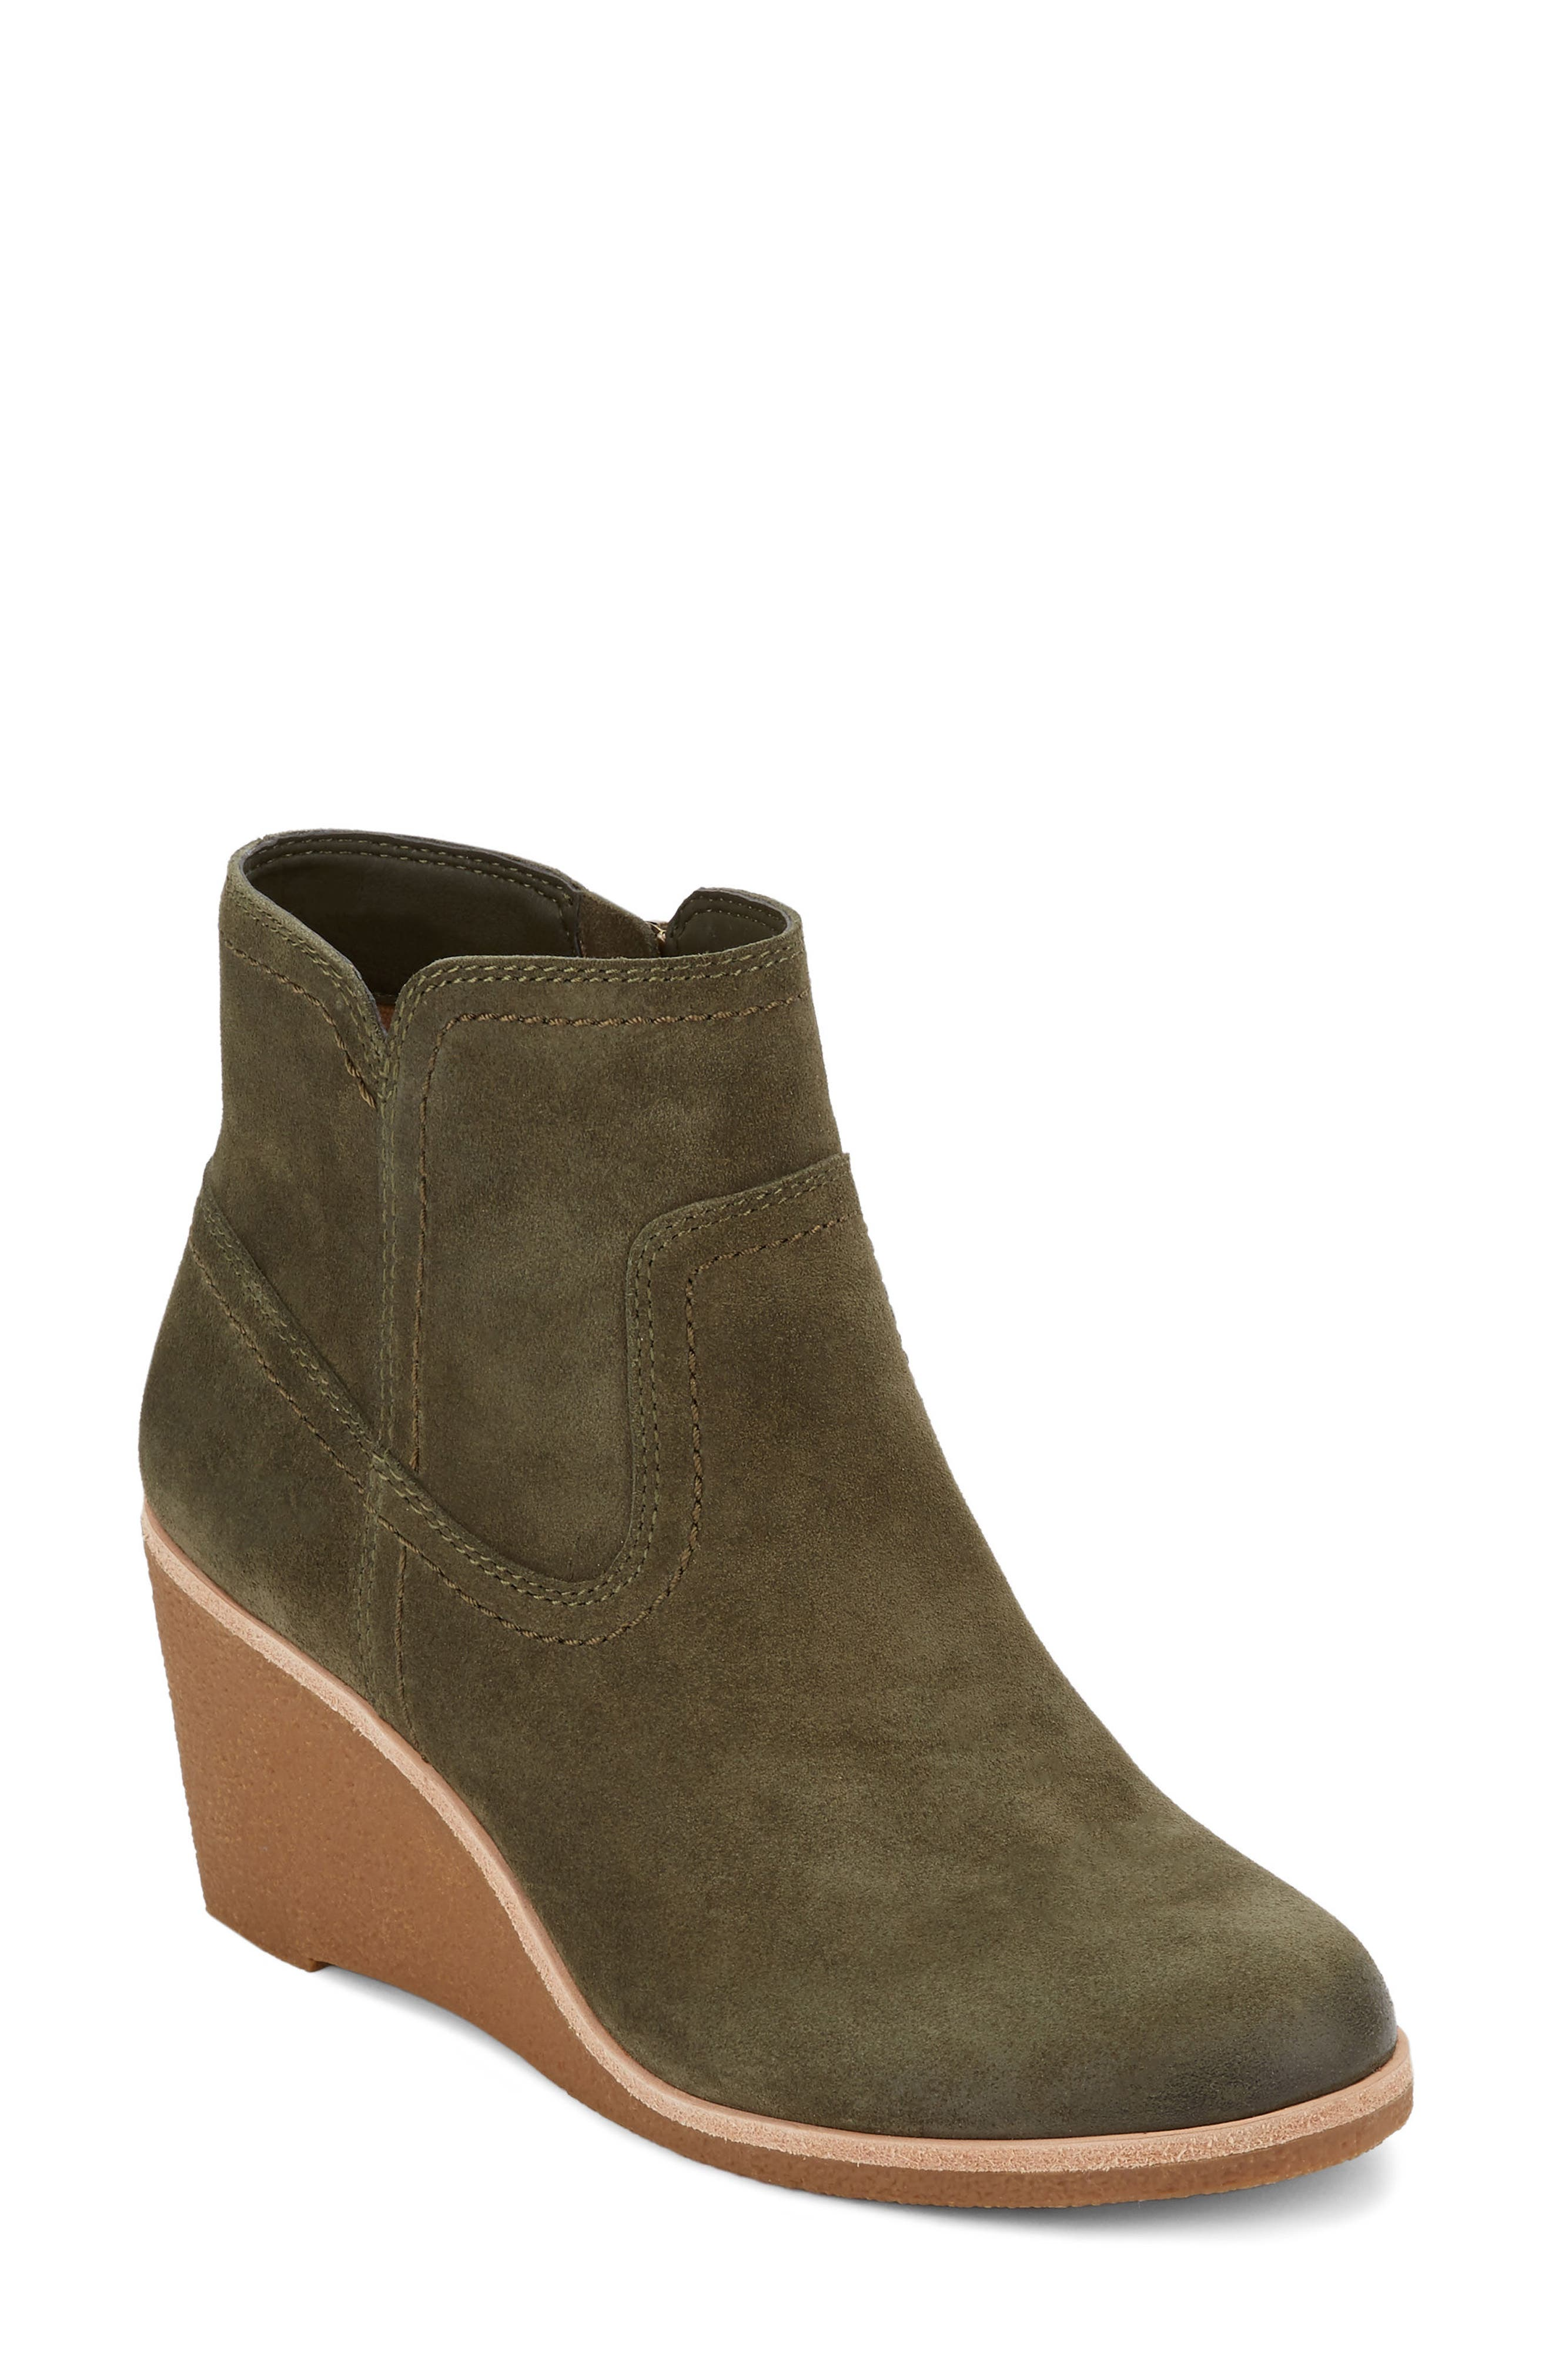 Alternate Image 1 Selected - G.H. Bass & Co. Rosanne Wedge Bootie (Women)